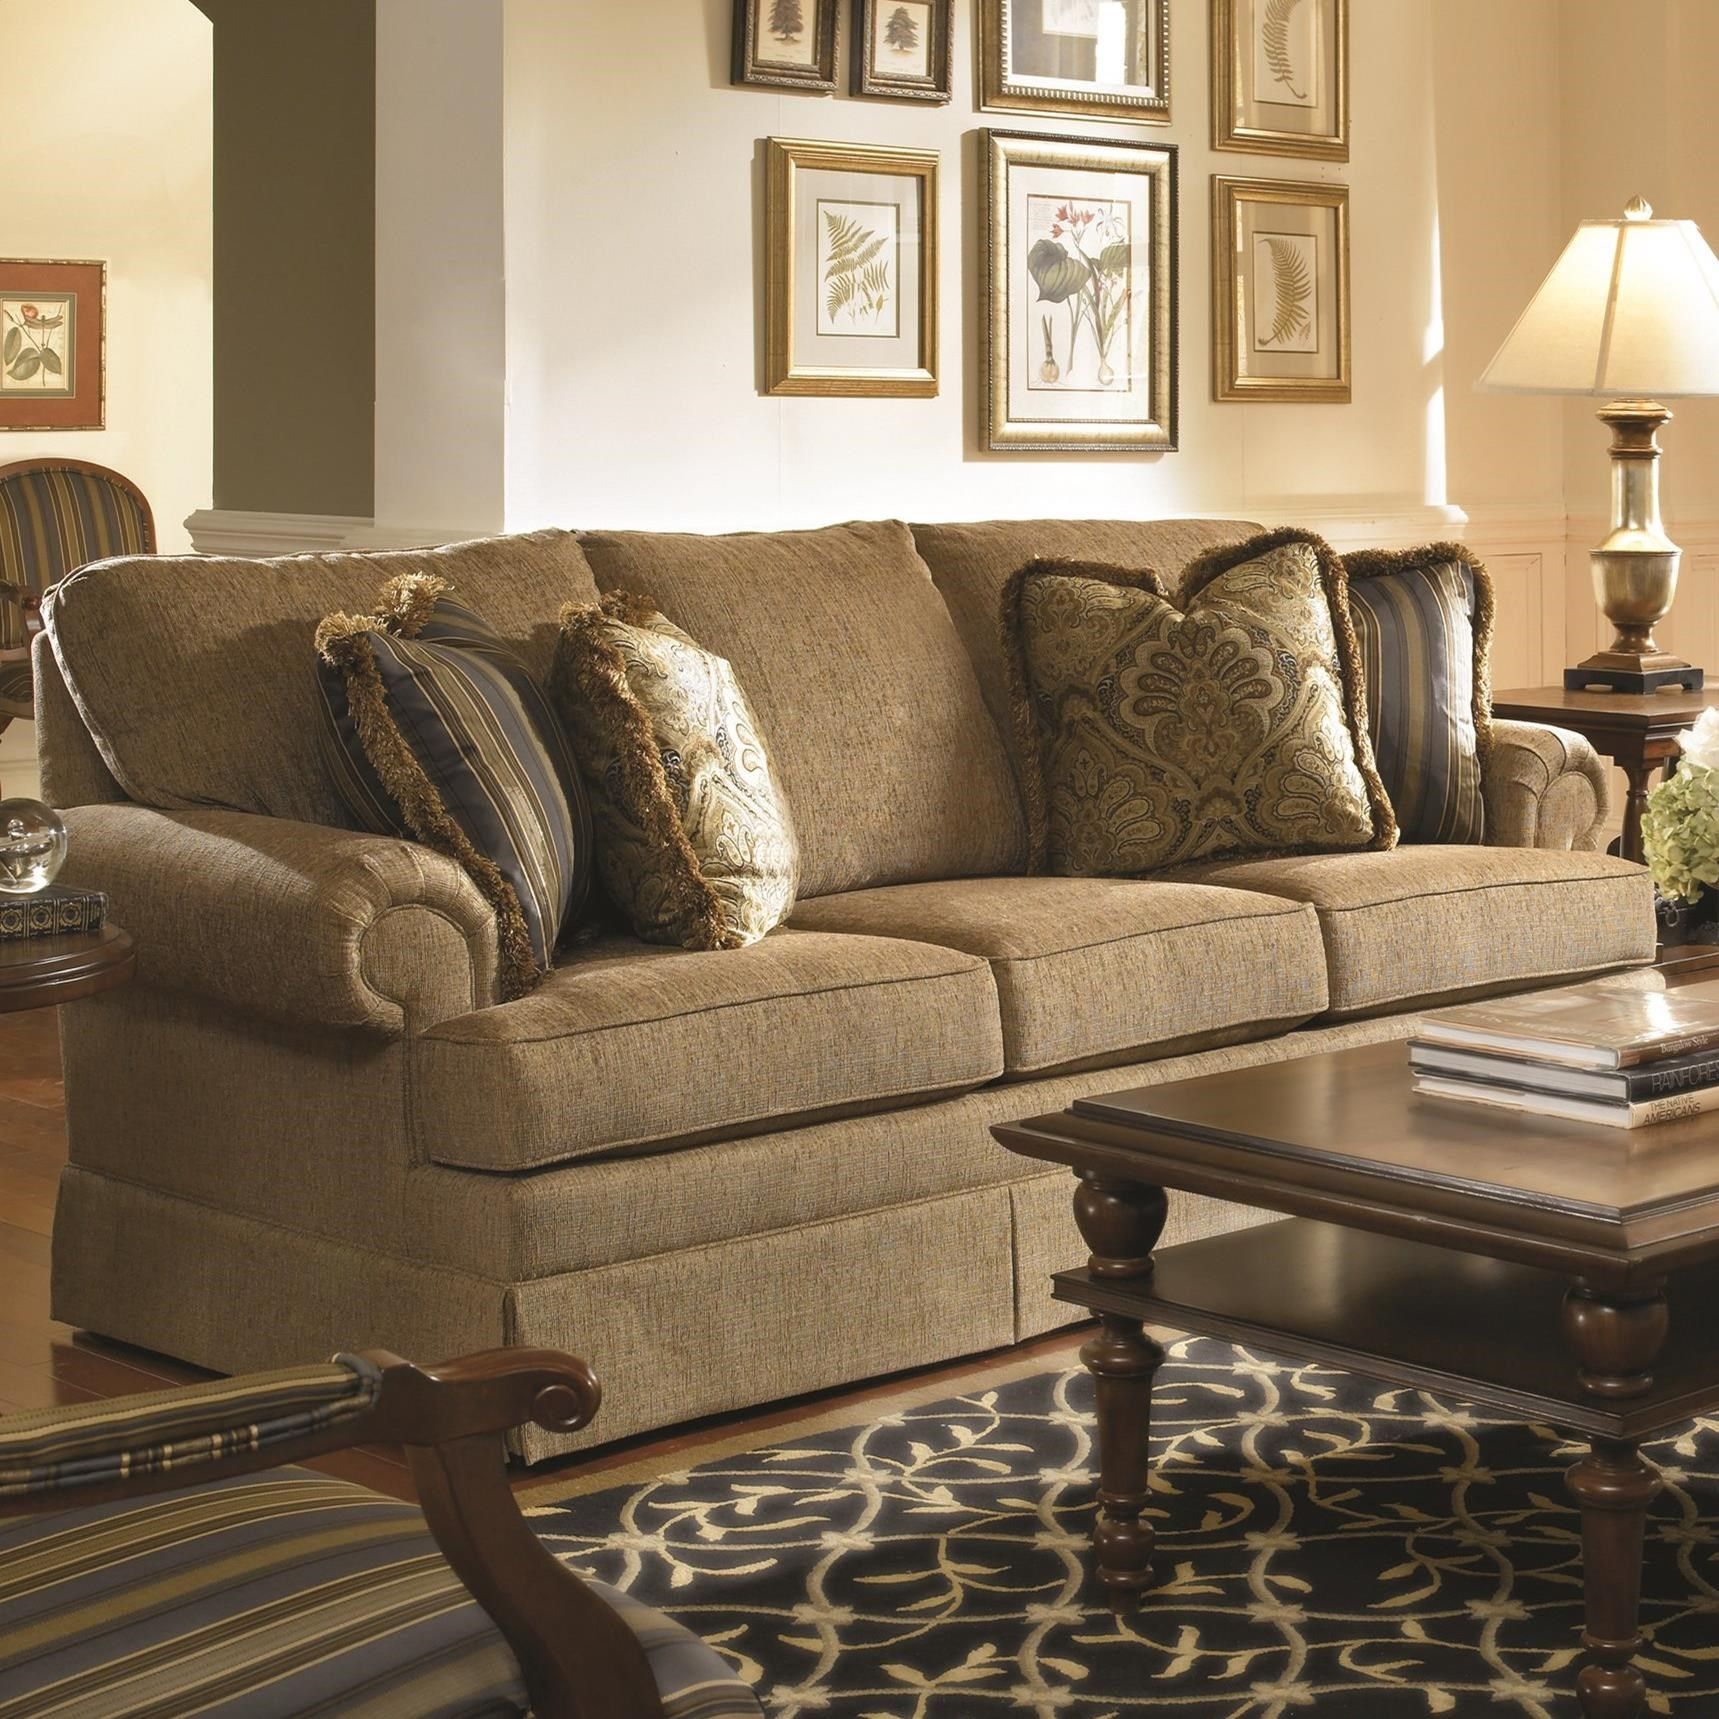 Custom Select Upholstery Small Sofa by Kincaid Furniture at Home Collections Furniture